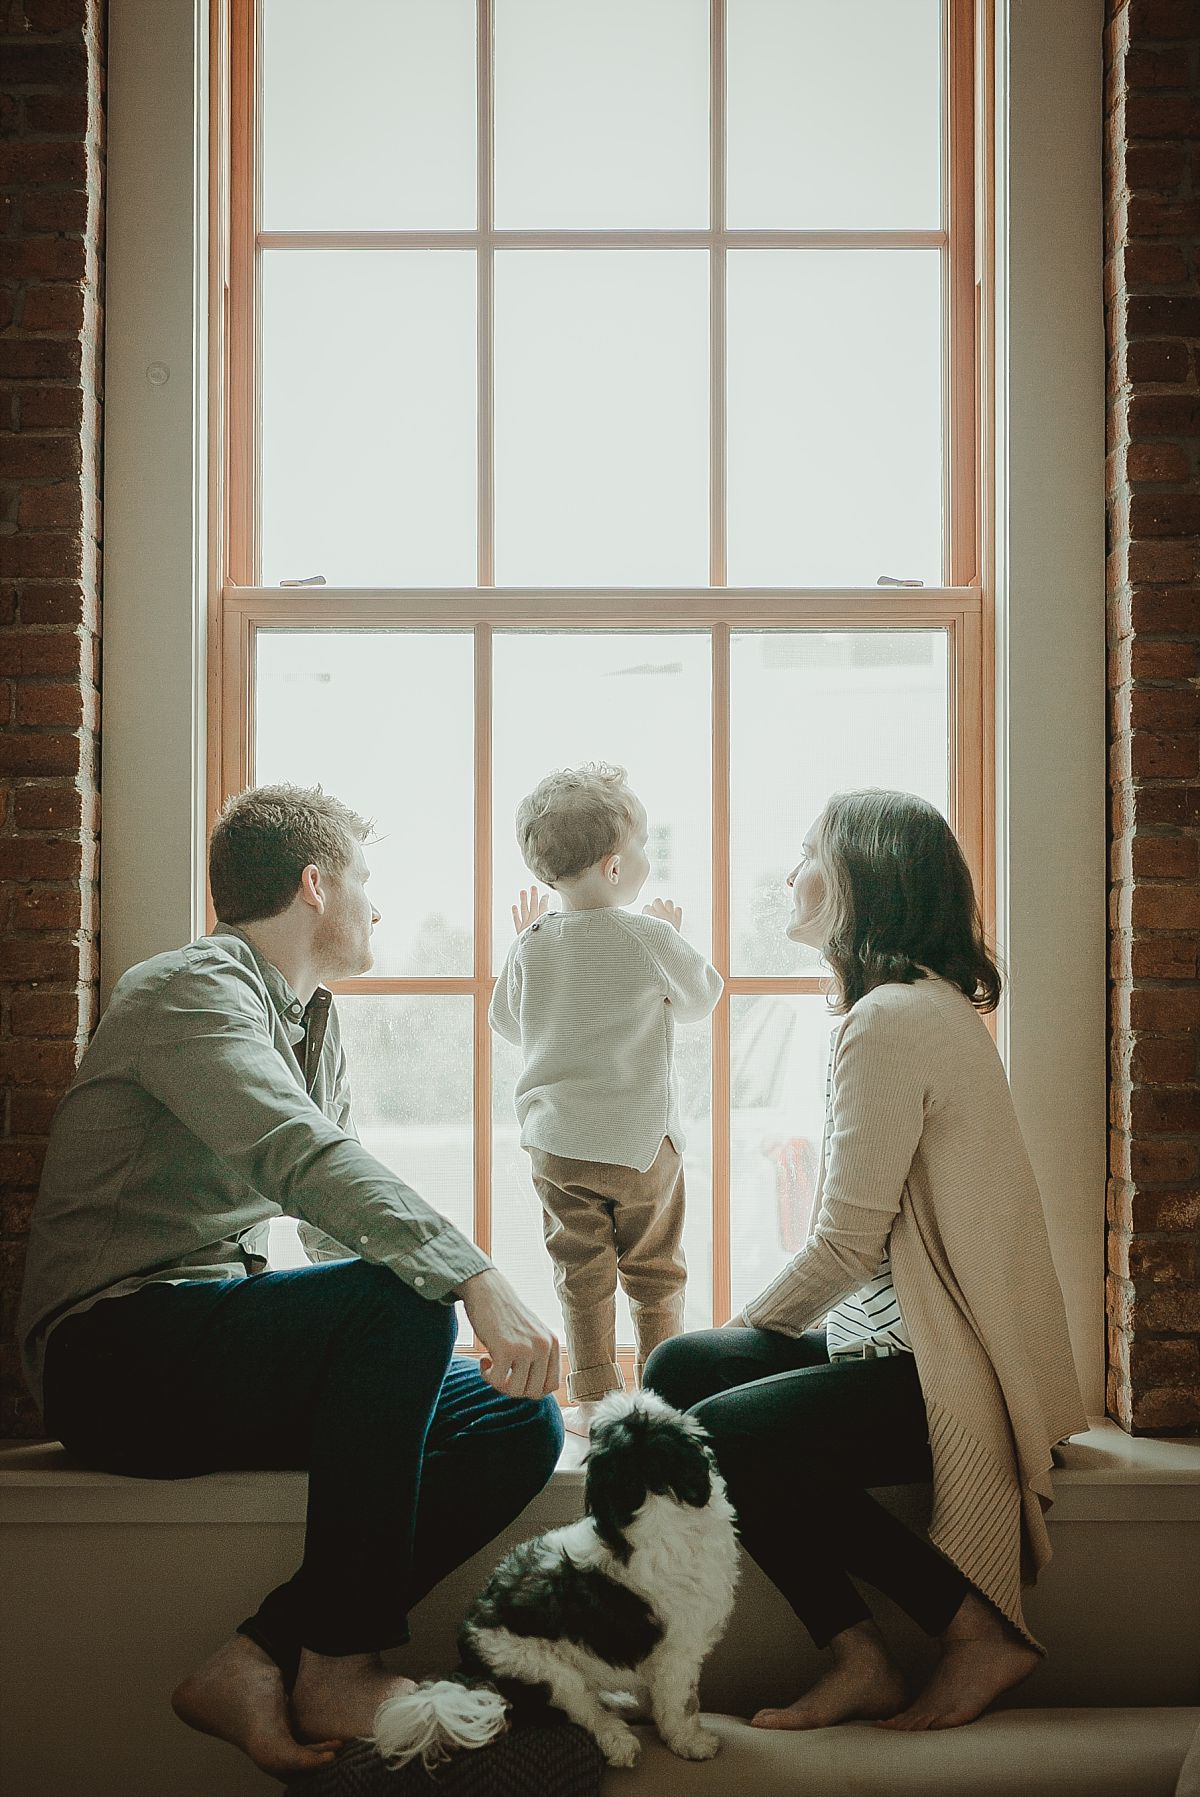 mom, dad, son and dog sit against light filled window looking at cars and trains go by. image by krystil mcdowall photography